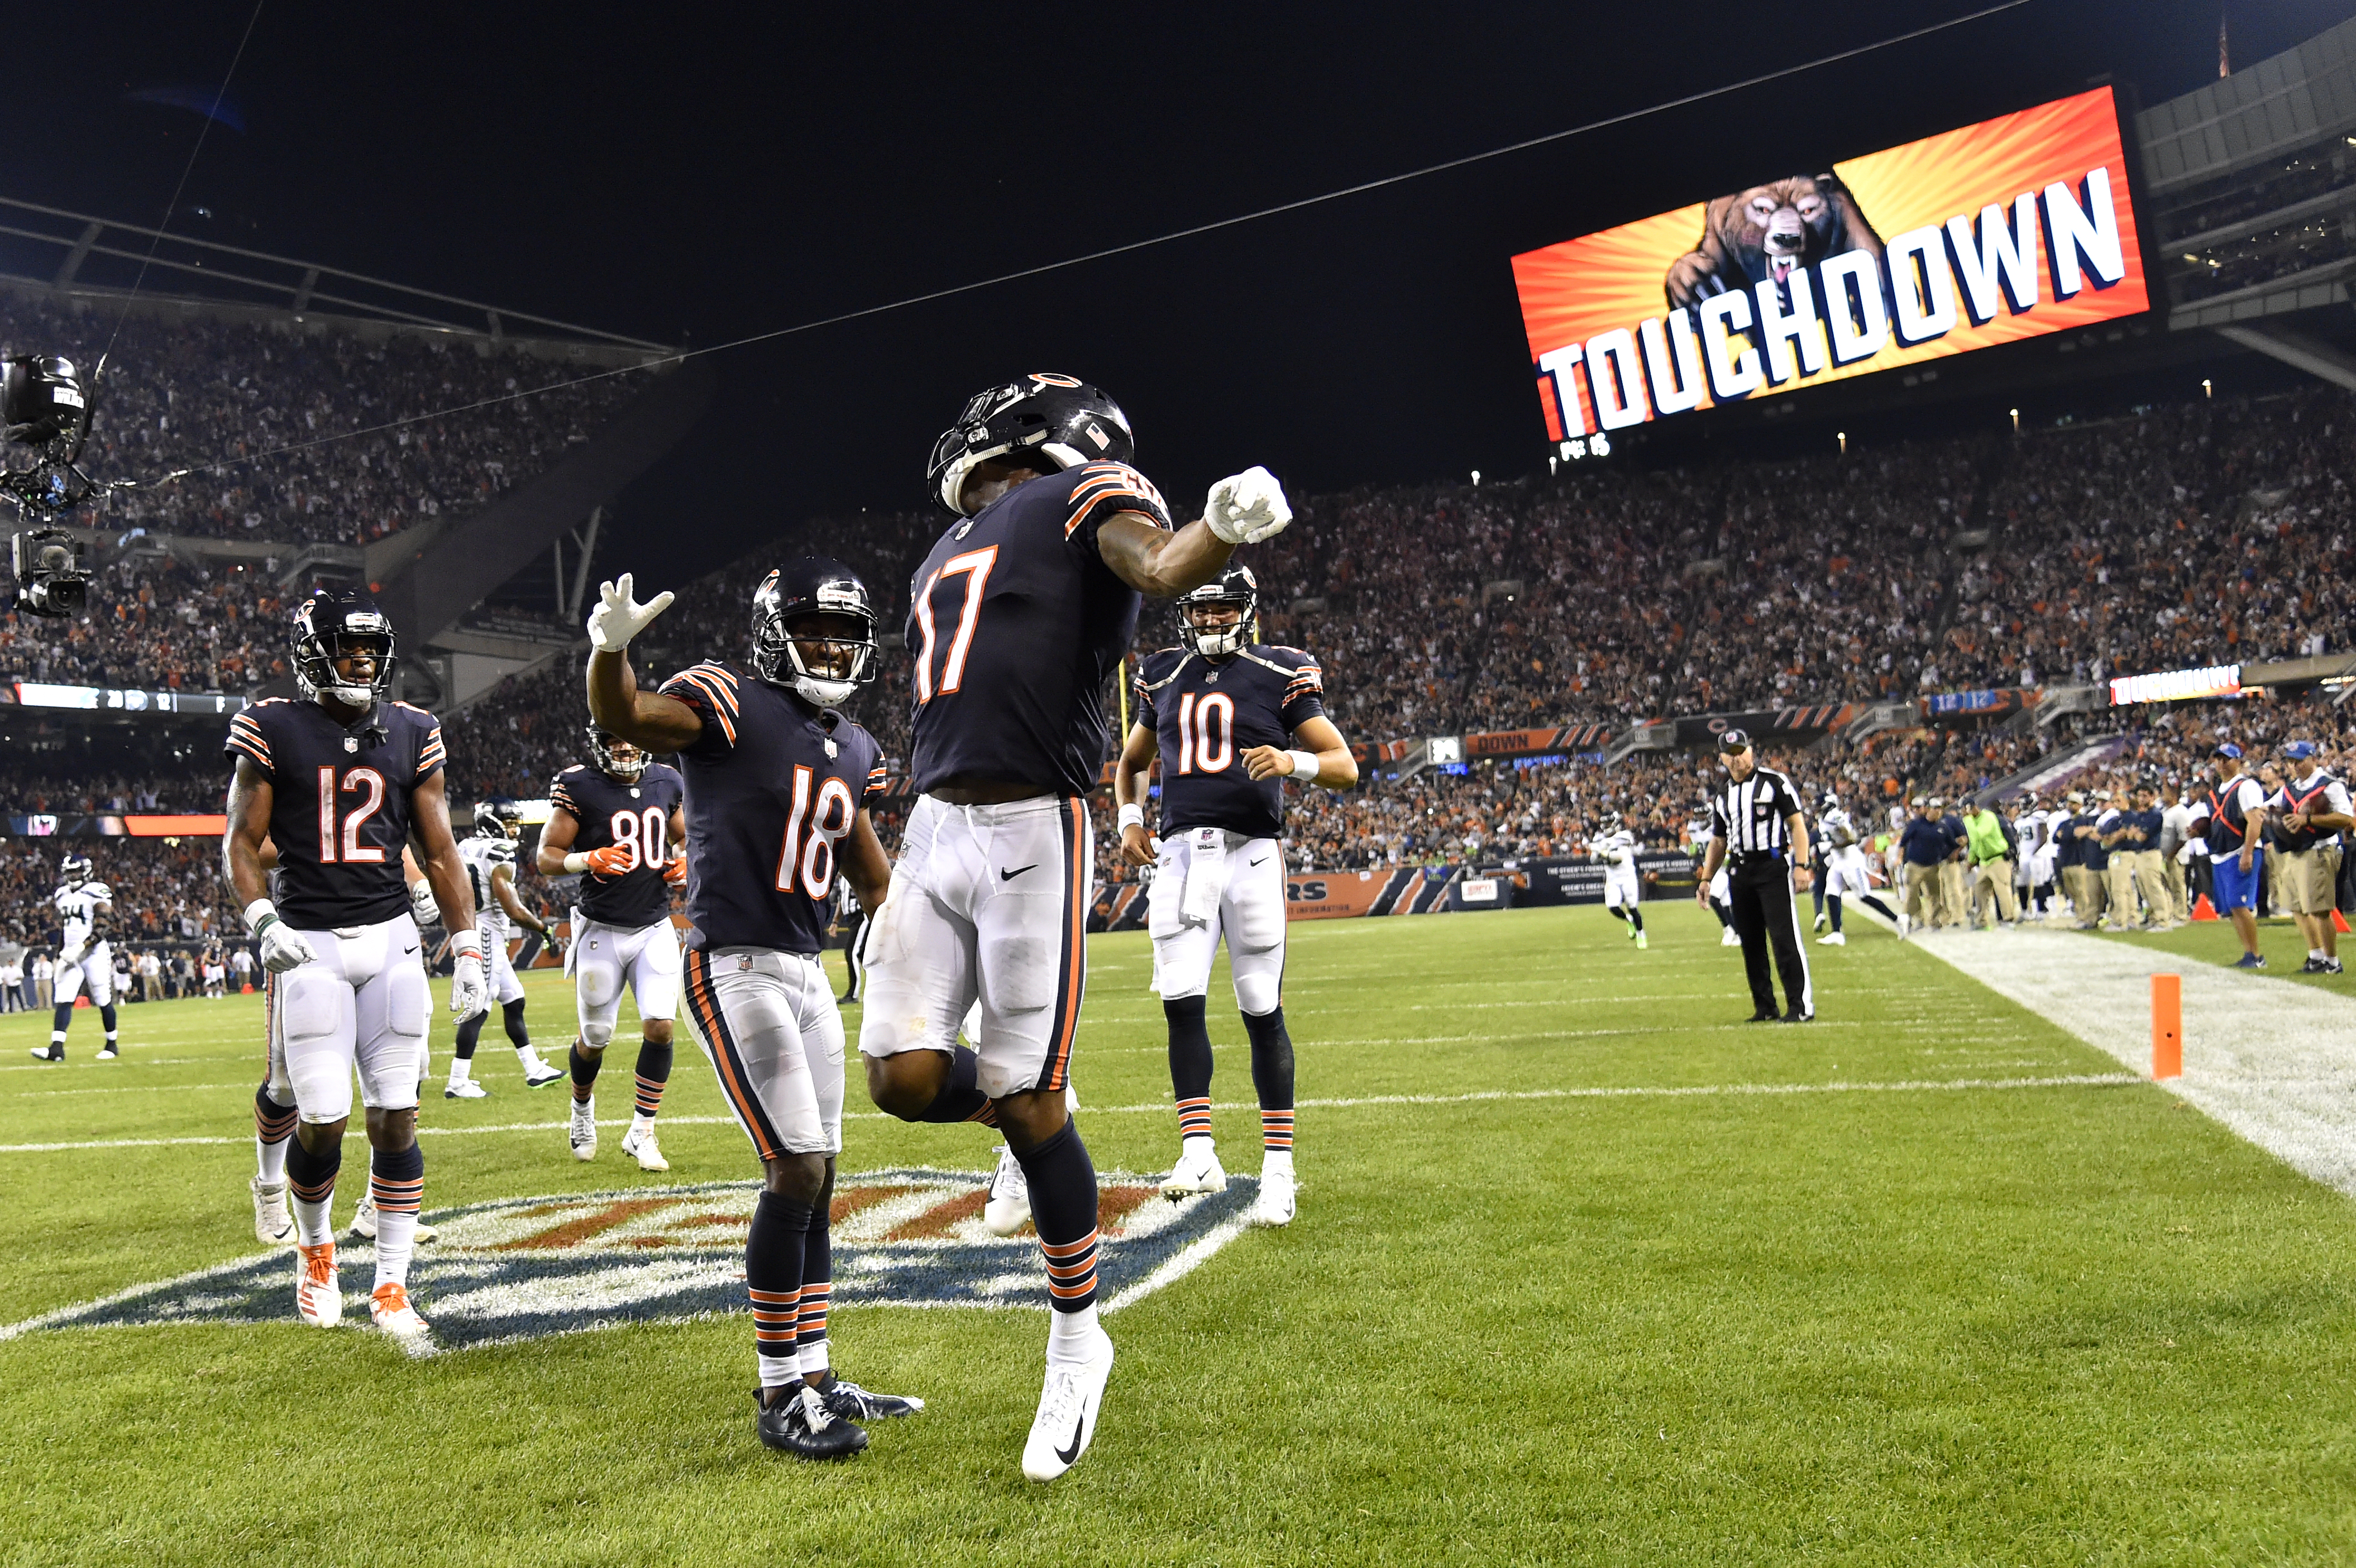 Dissecting the Bears' 24-17 win over Seattle in Week 2